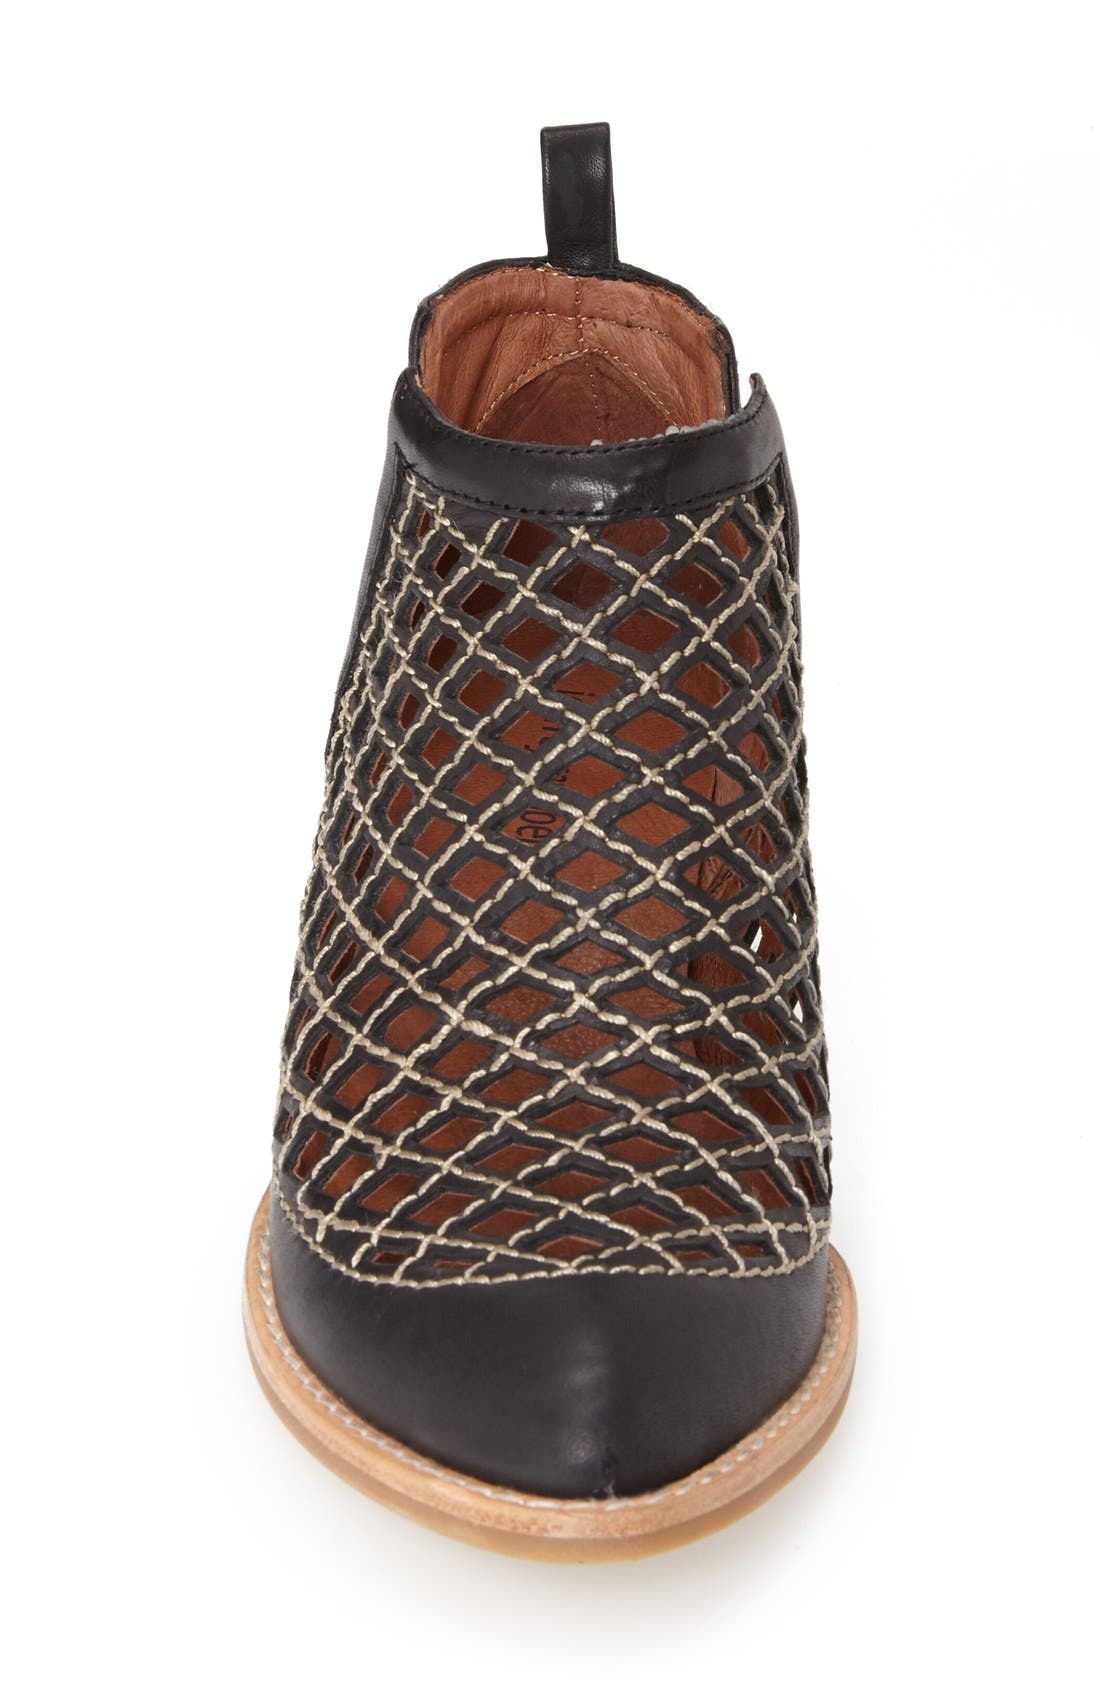 Taggart Ankle Boot,                             Alternate thumbnail 3, color,                             001